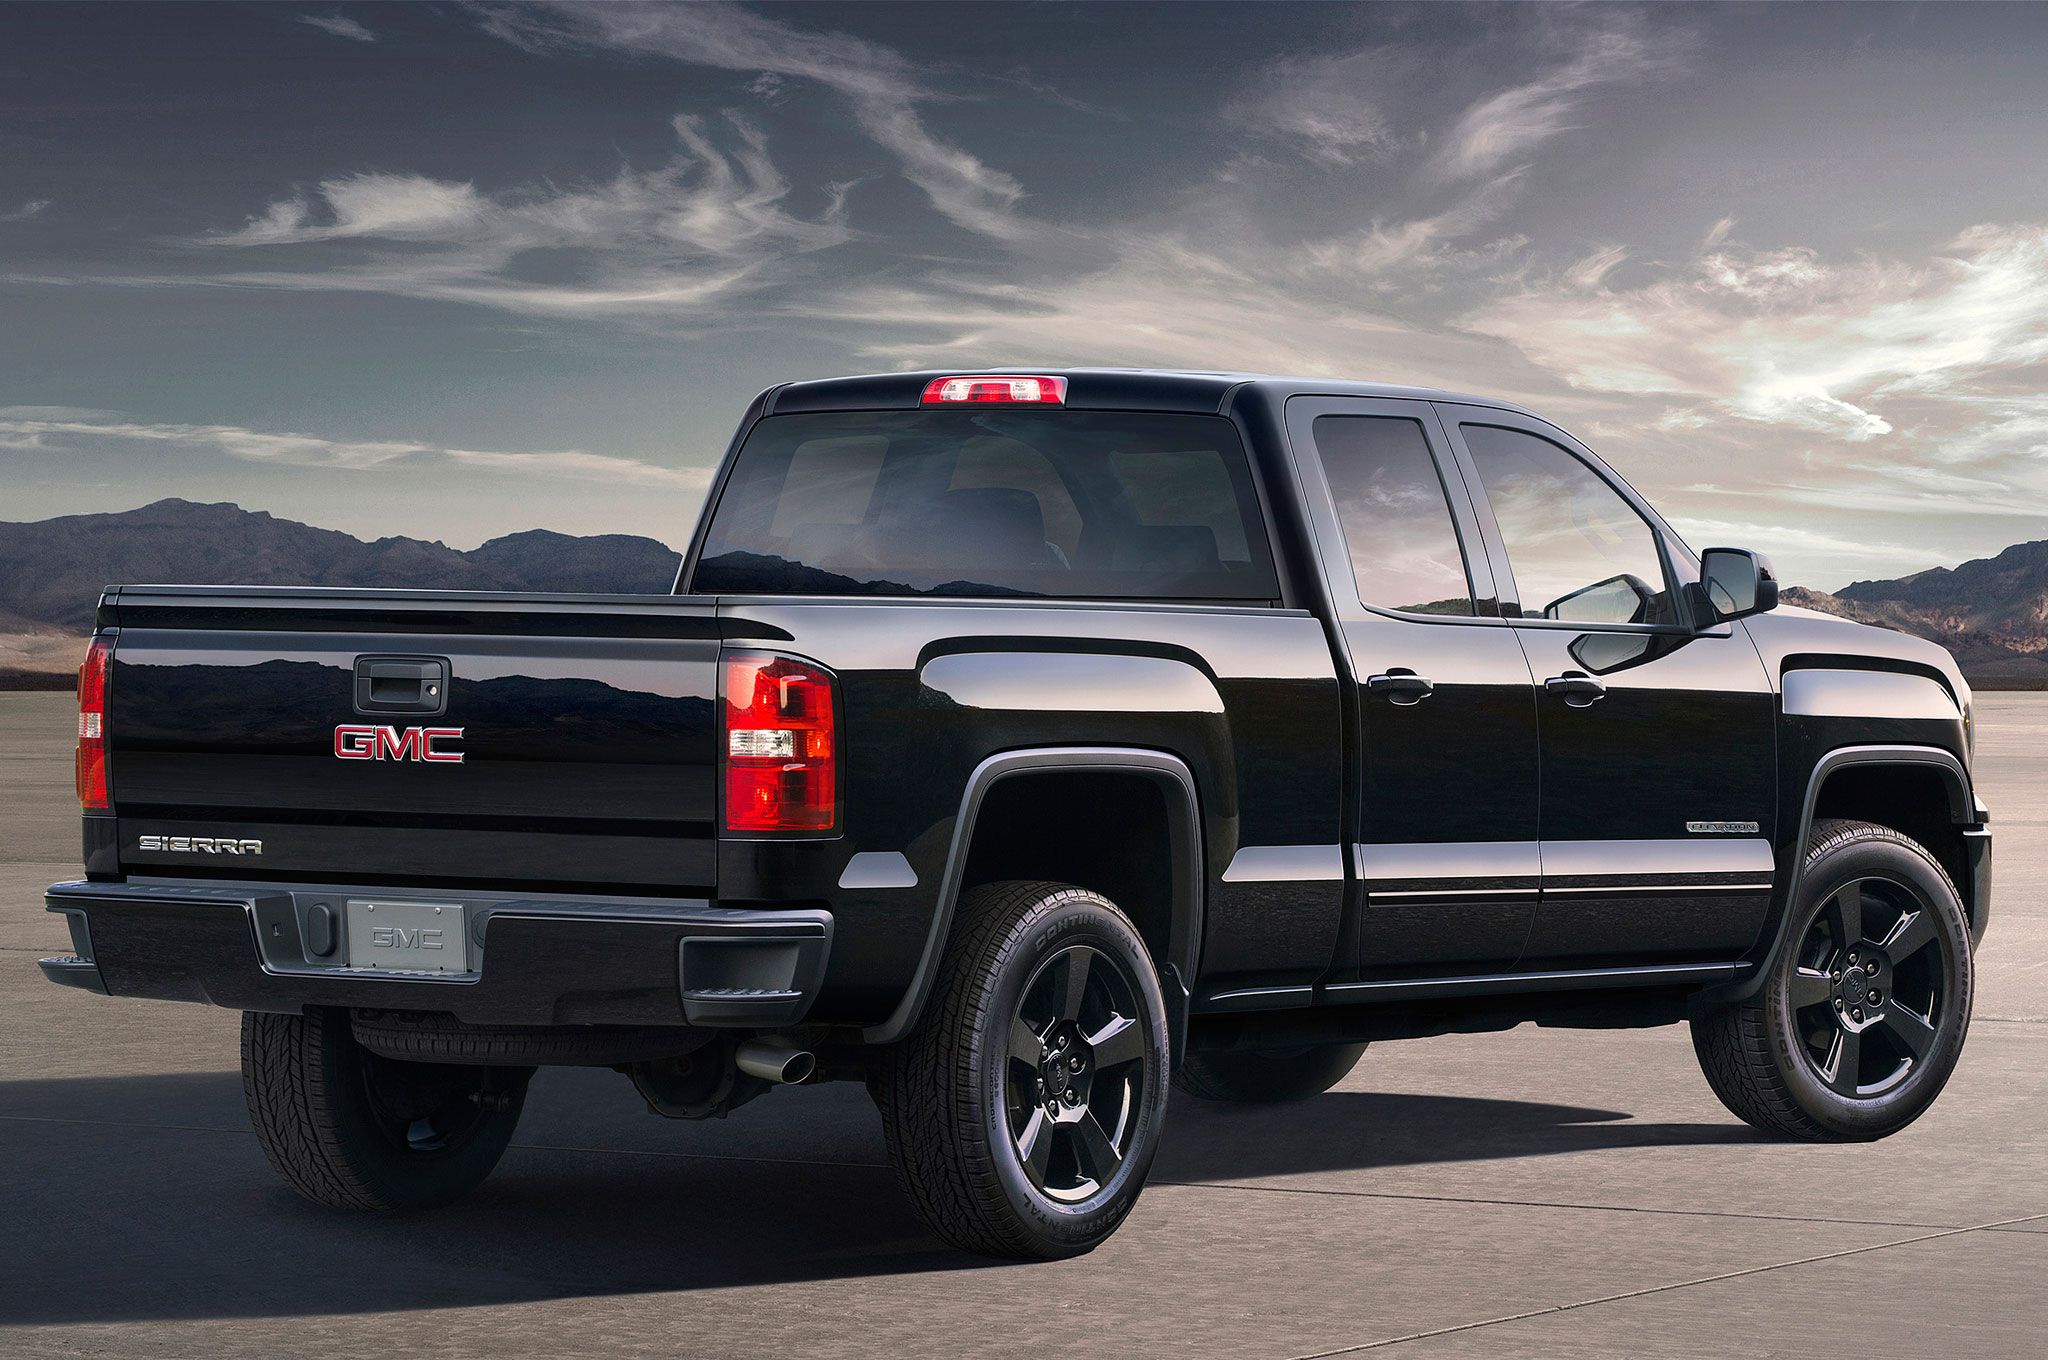 new ultimate trucks sierra conquers la mountains revealed cash gmc denali